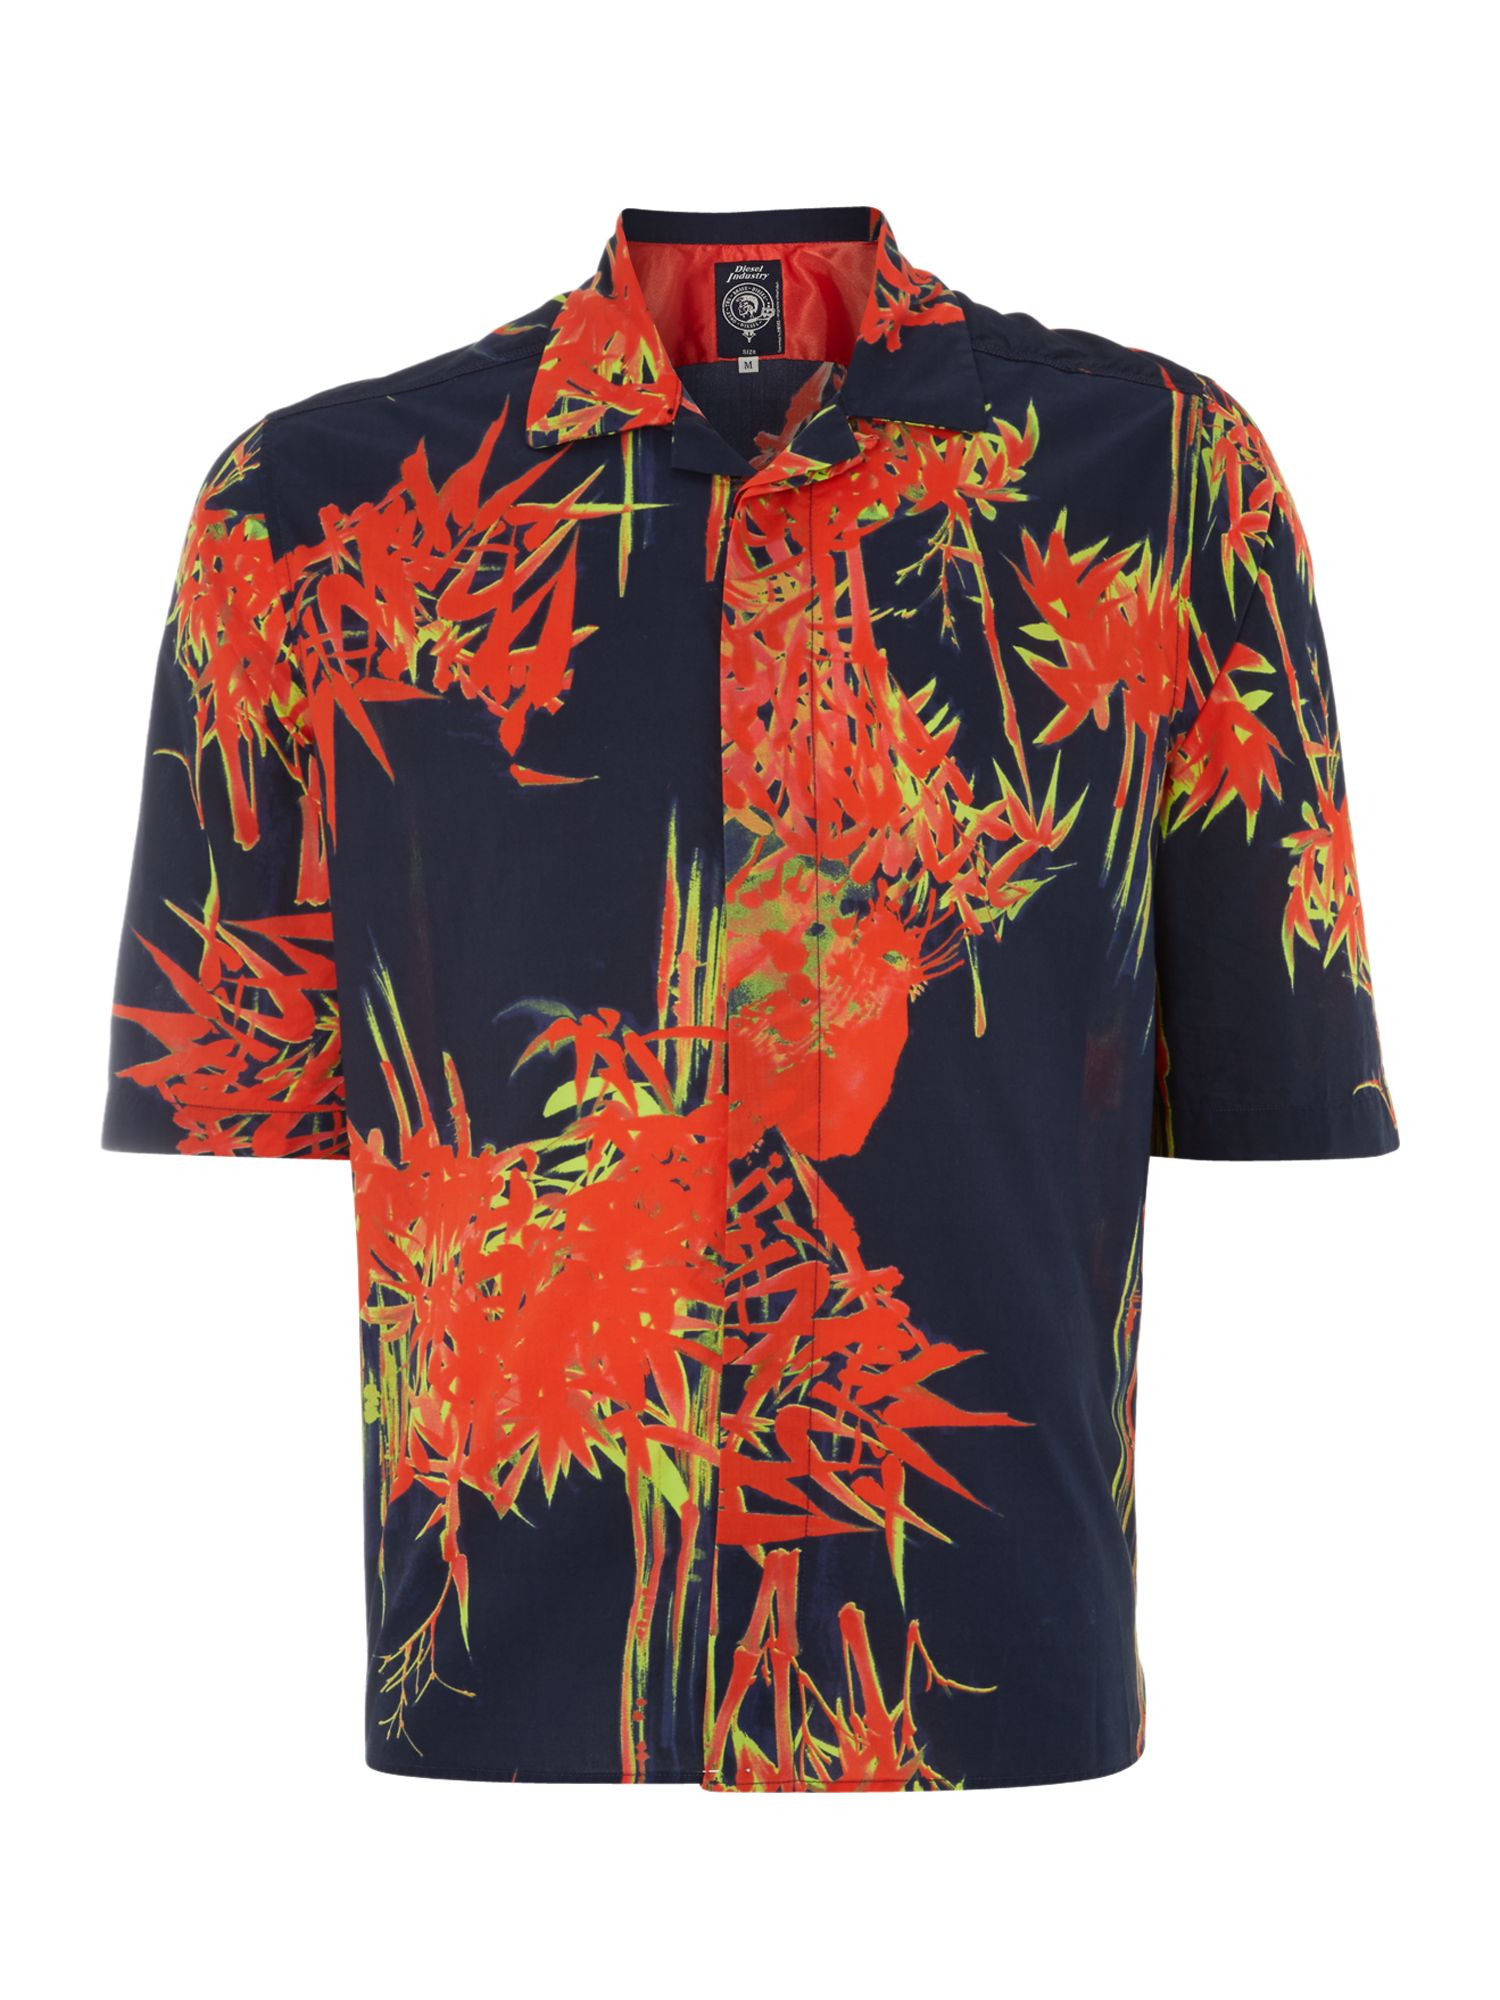 Short sleeve bamboo print shirt